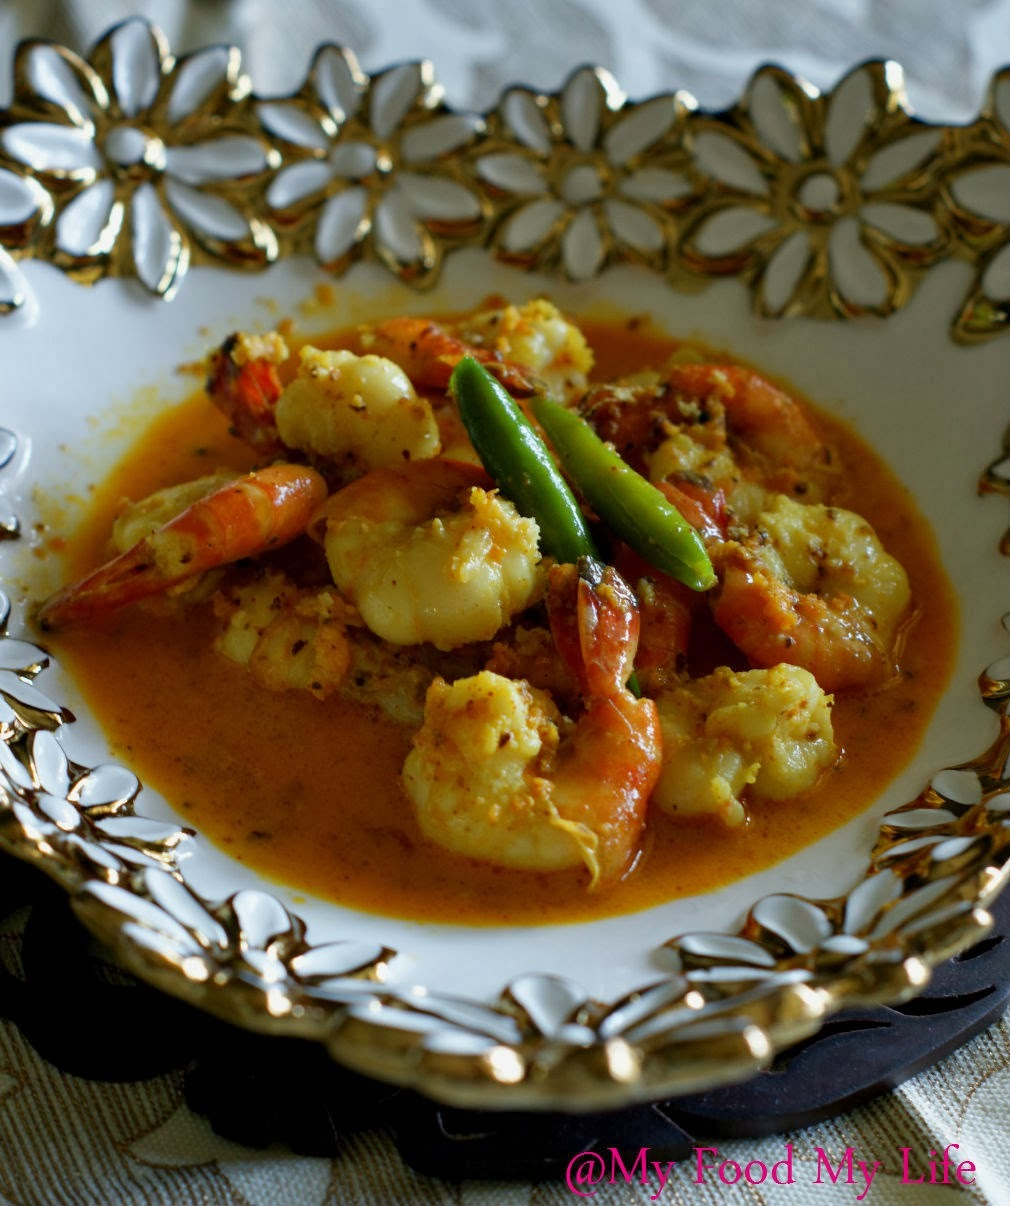 Chingri Narkel Shorshe - Prawns in a coconut mustard gravy